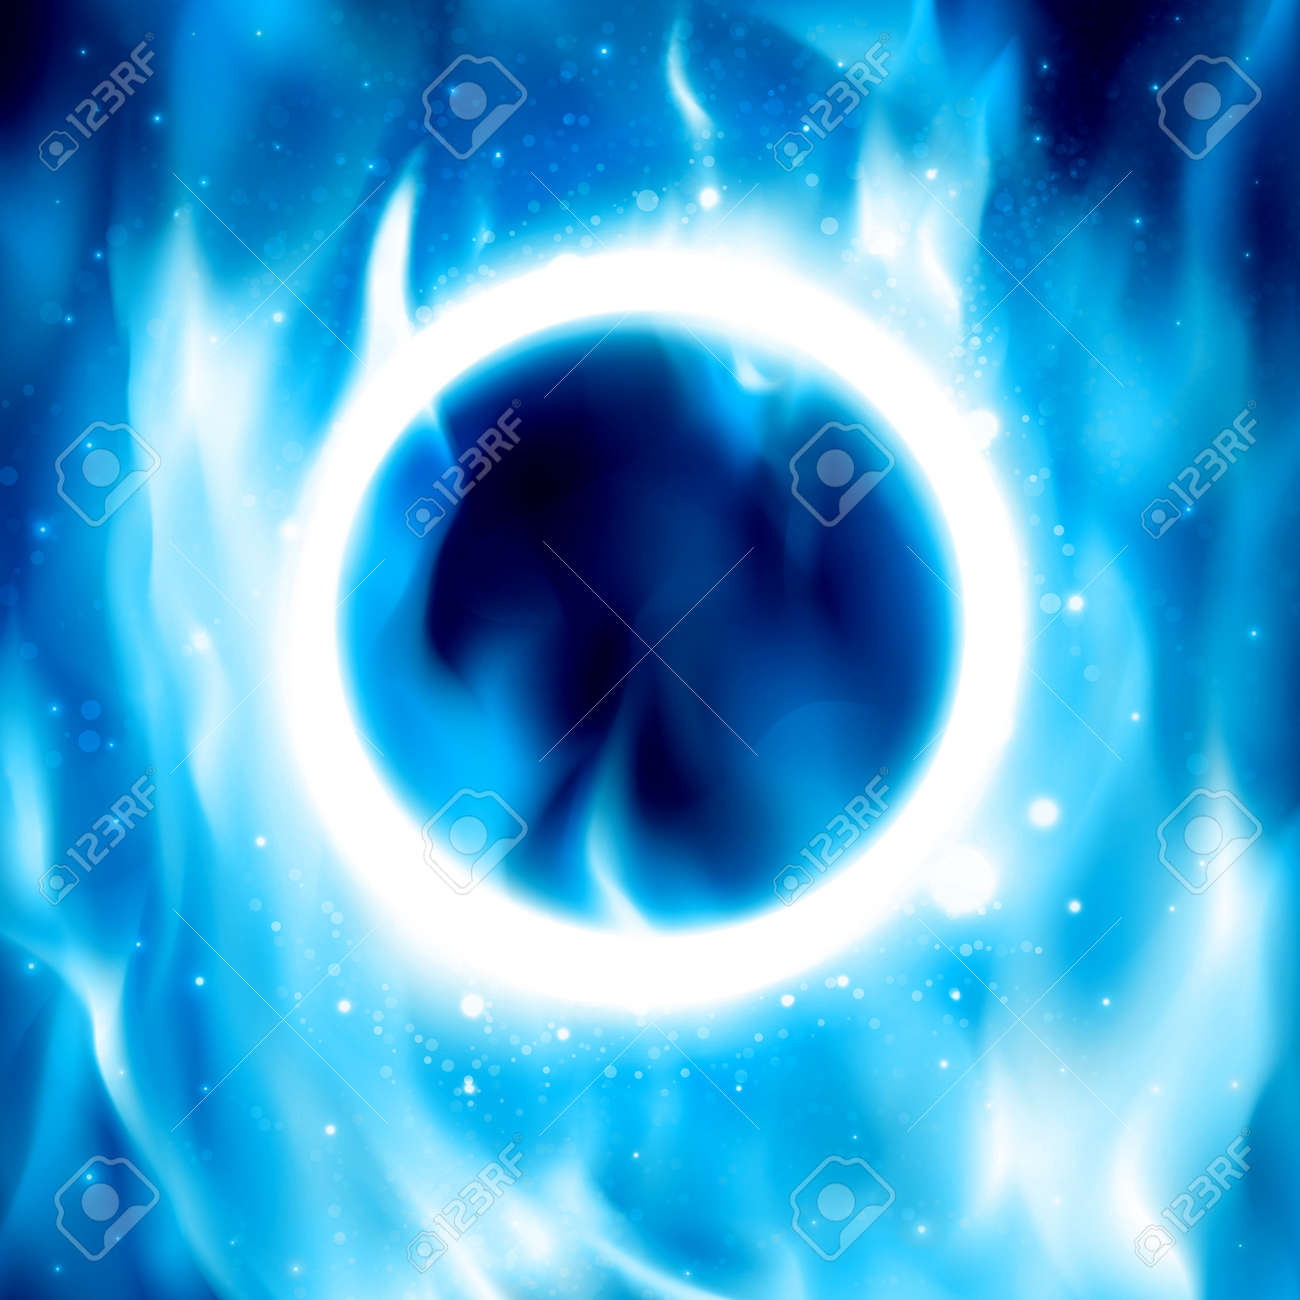 Blue Ring Of Fire. Vector Illustration. Abstract Background With Fire  Flames And Copyspace.